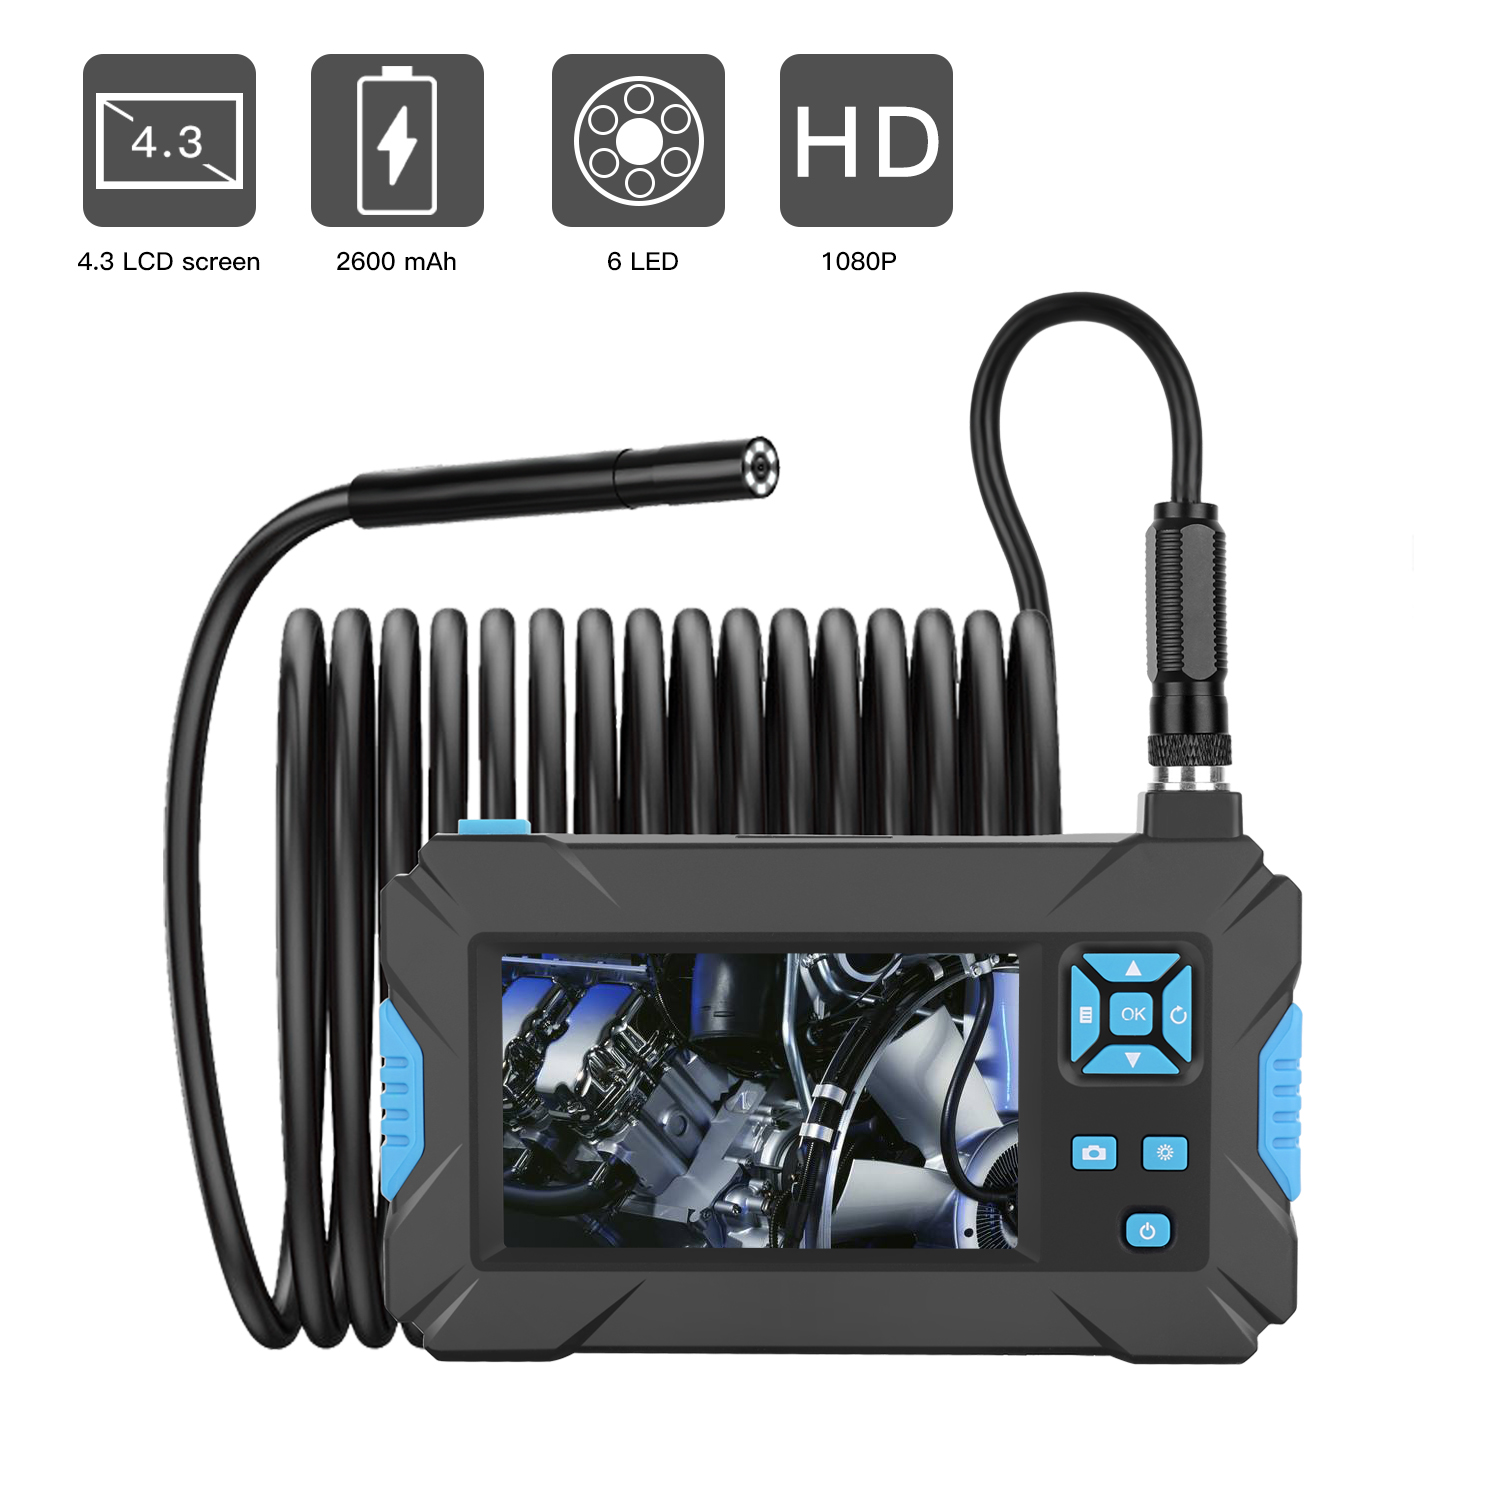 2m 5m 10m P30 IP67 Waterproof Hard Cable 4.3 Inch LCD Endoscope Borescopes Industrial Endoscope 1920*1080 70 Borescope Endoscope